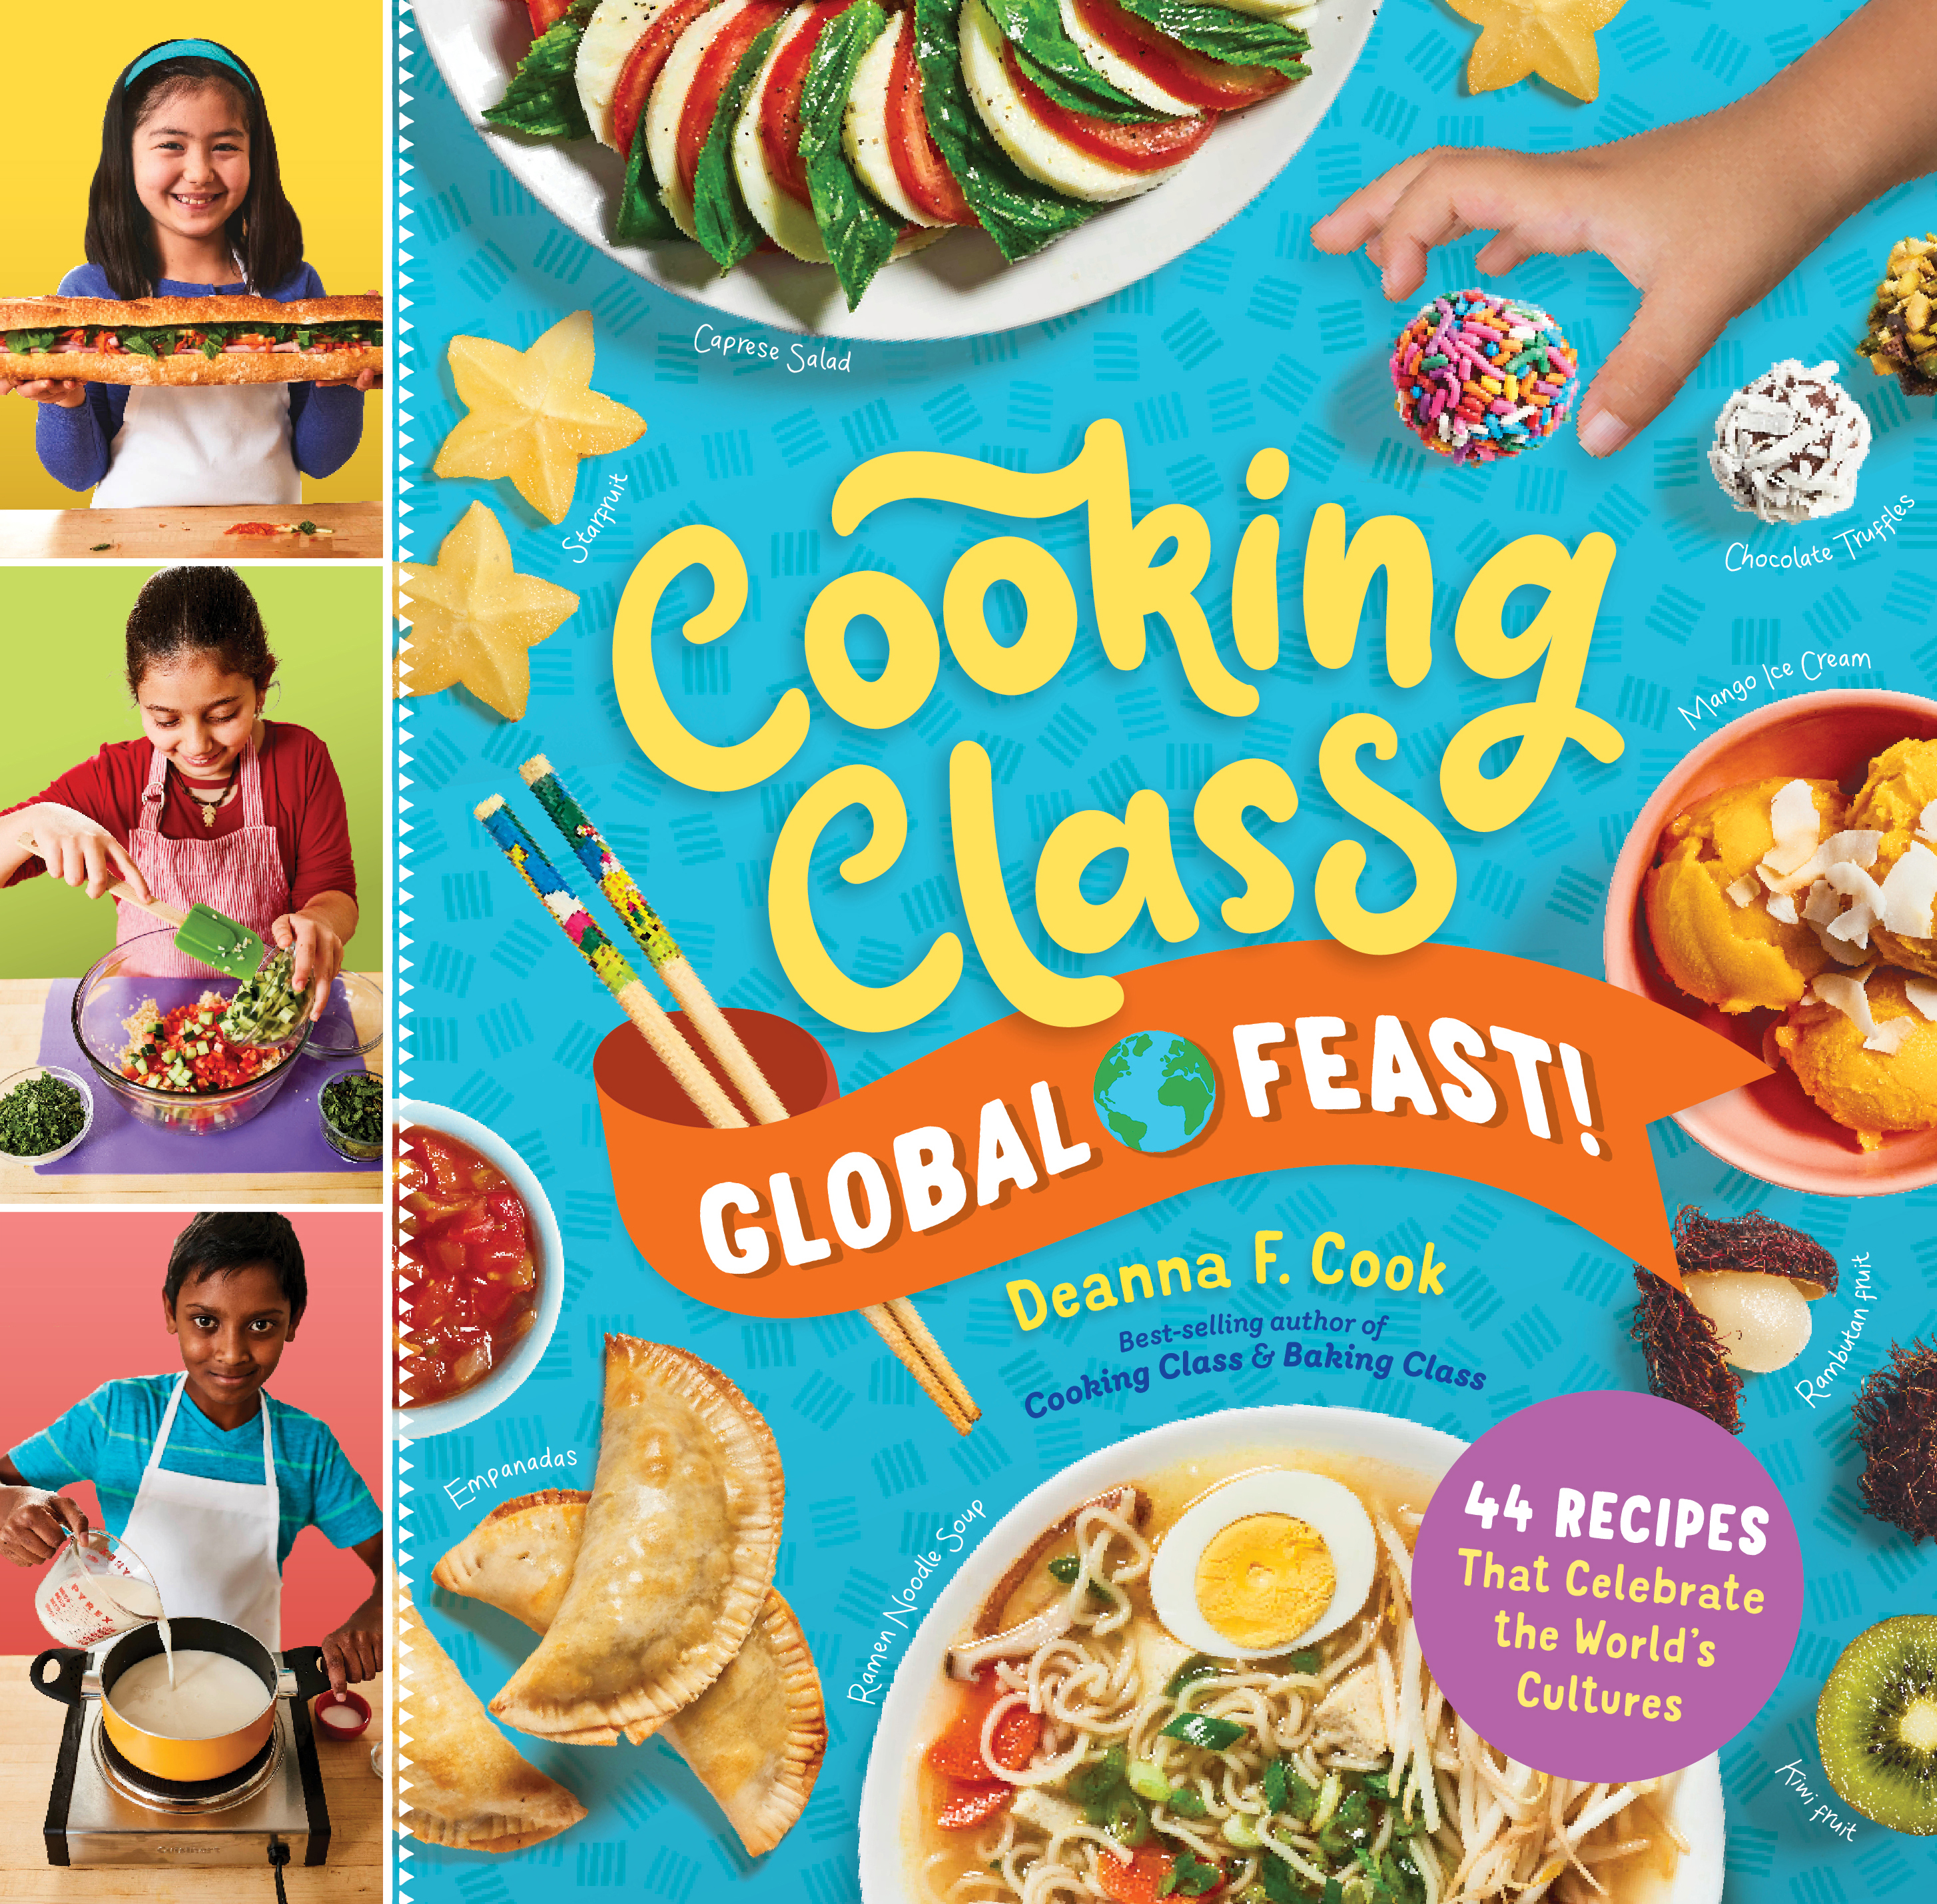 Cooking Class Global Feast! 44 Recipes That Celebrate the World's Cultures - Deanna F. Cook